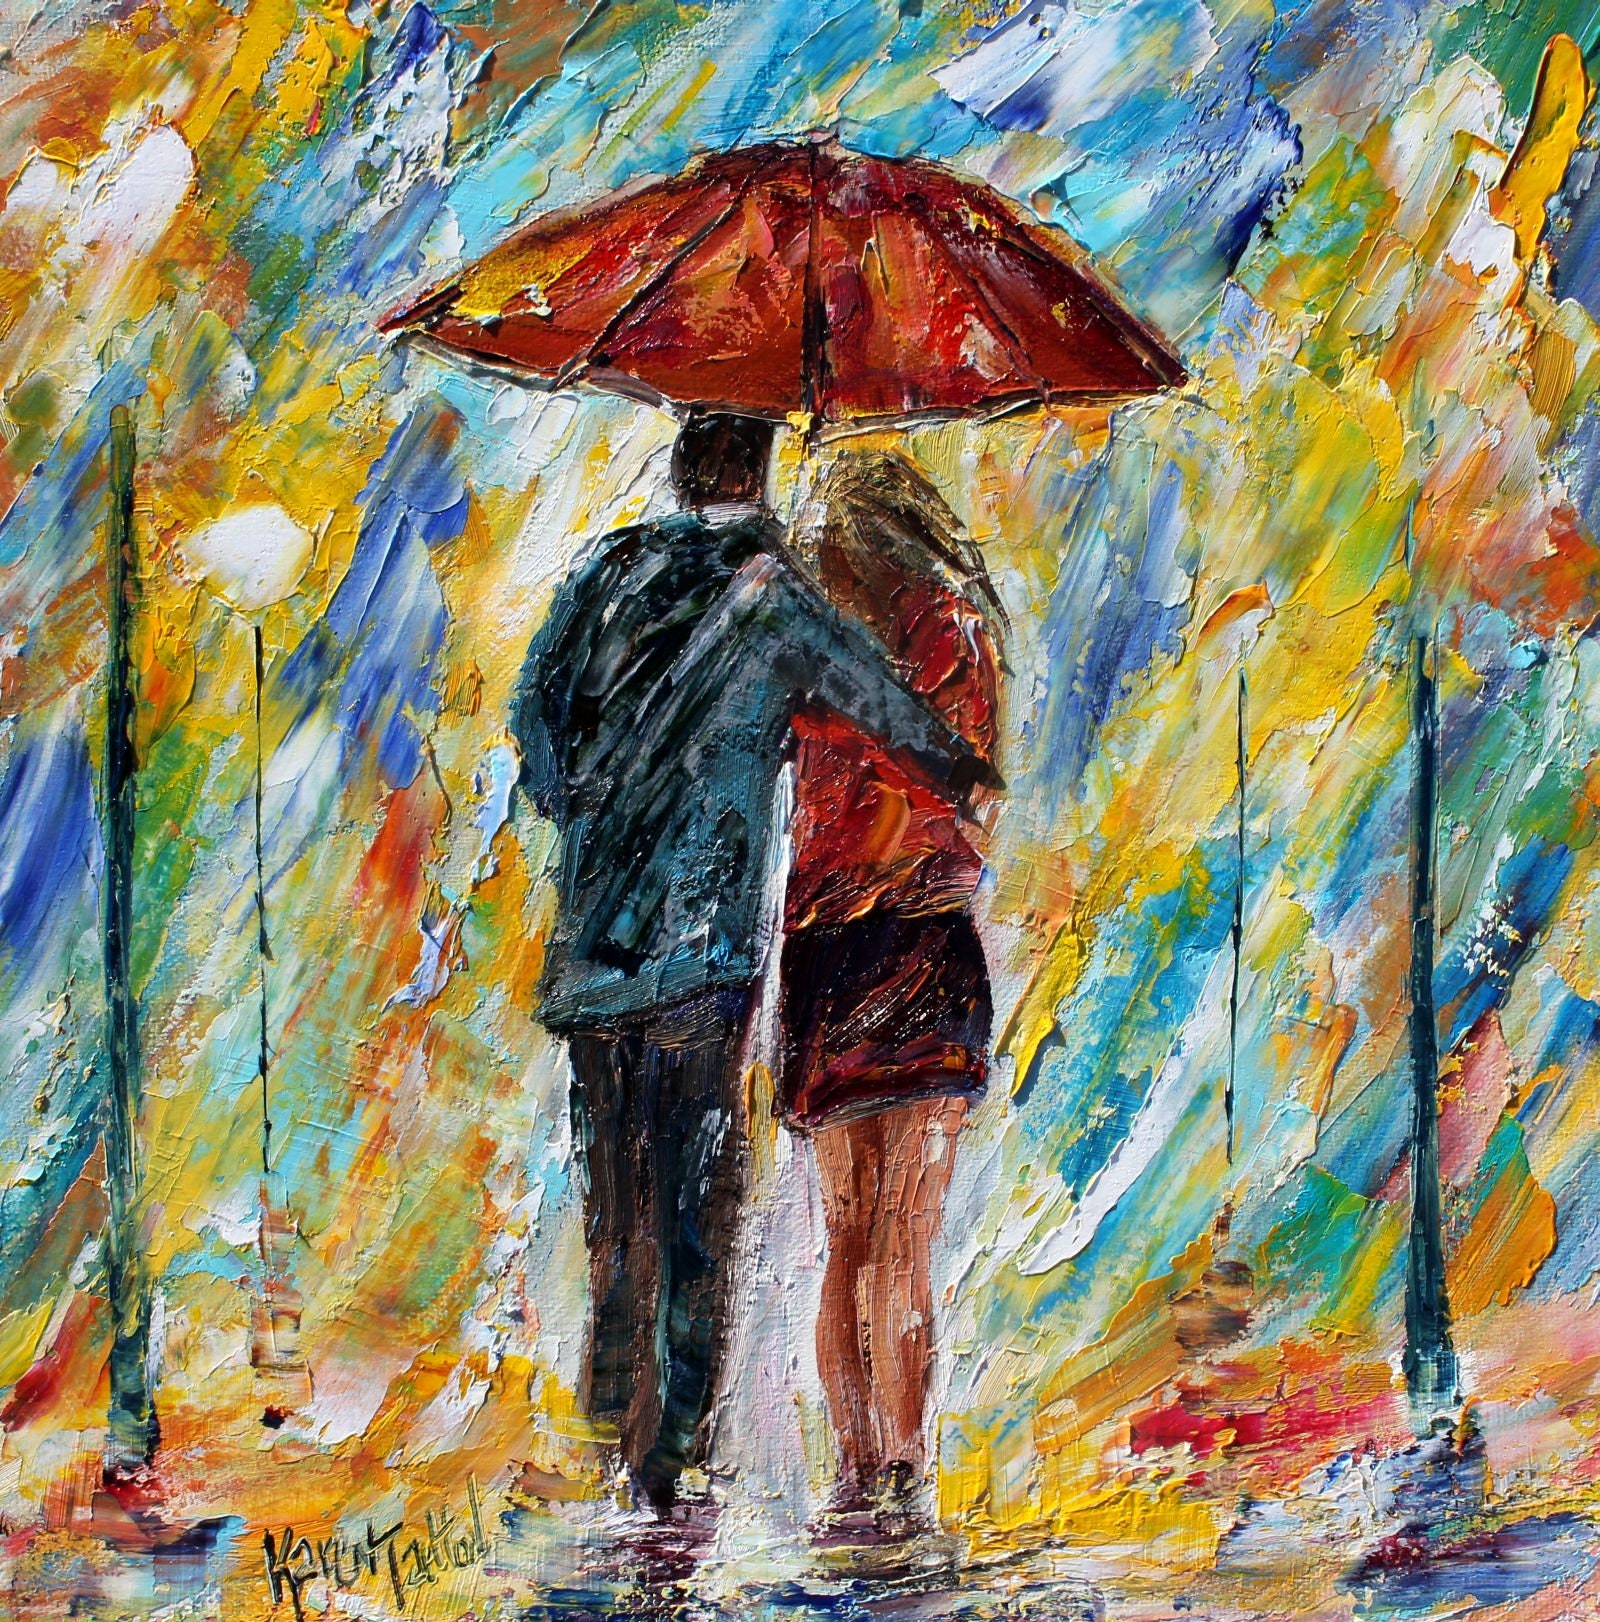 Rain Painting, Love Couple Painting, Original Oil, 12x12